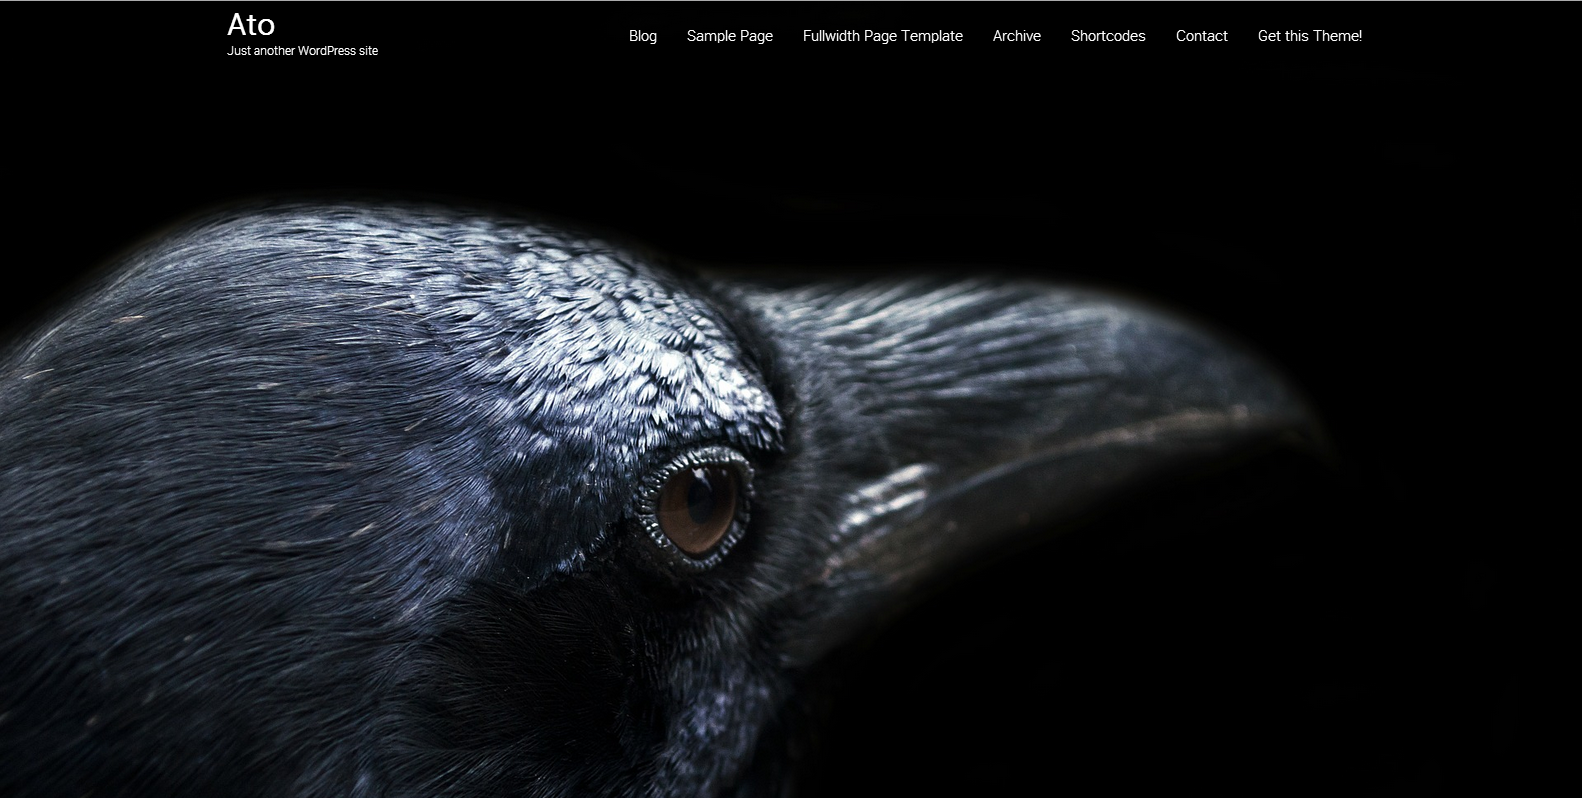 Ato WordPress Theme